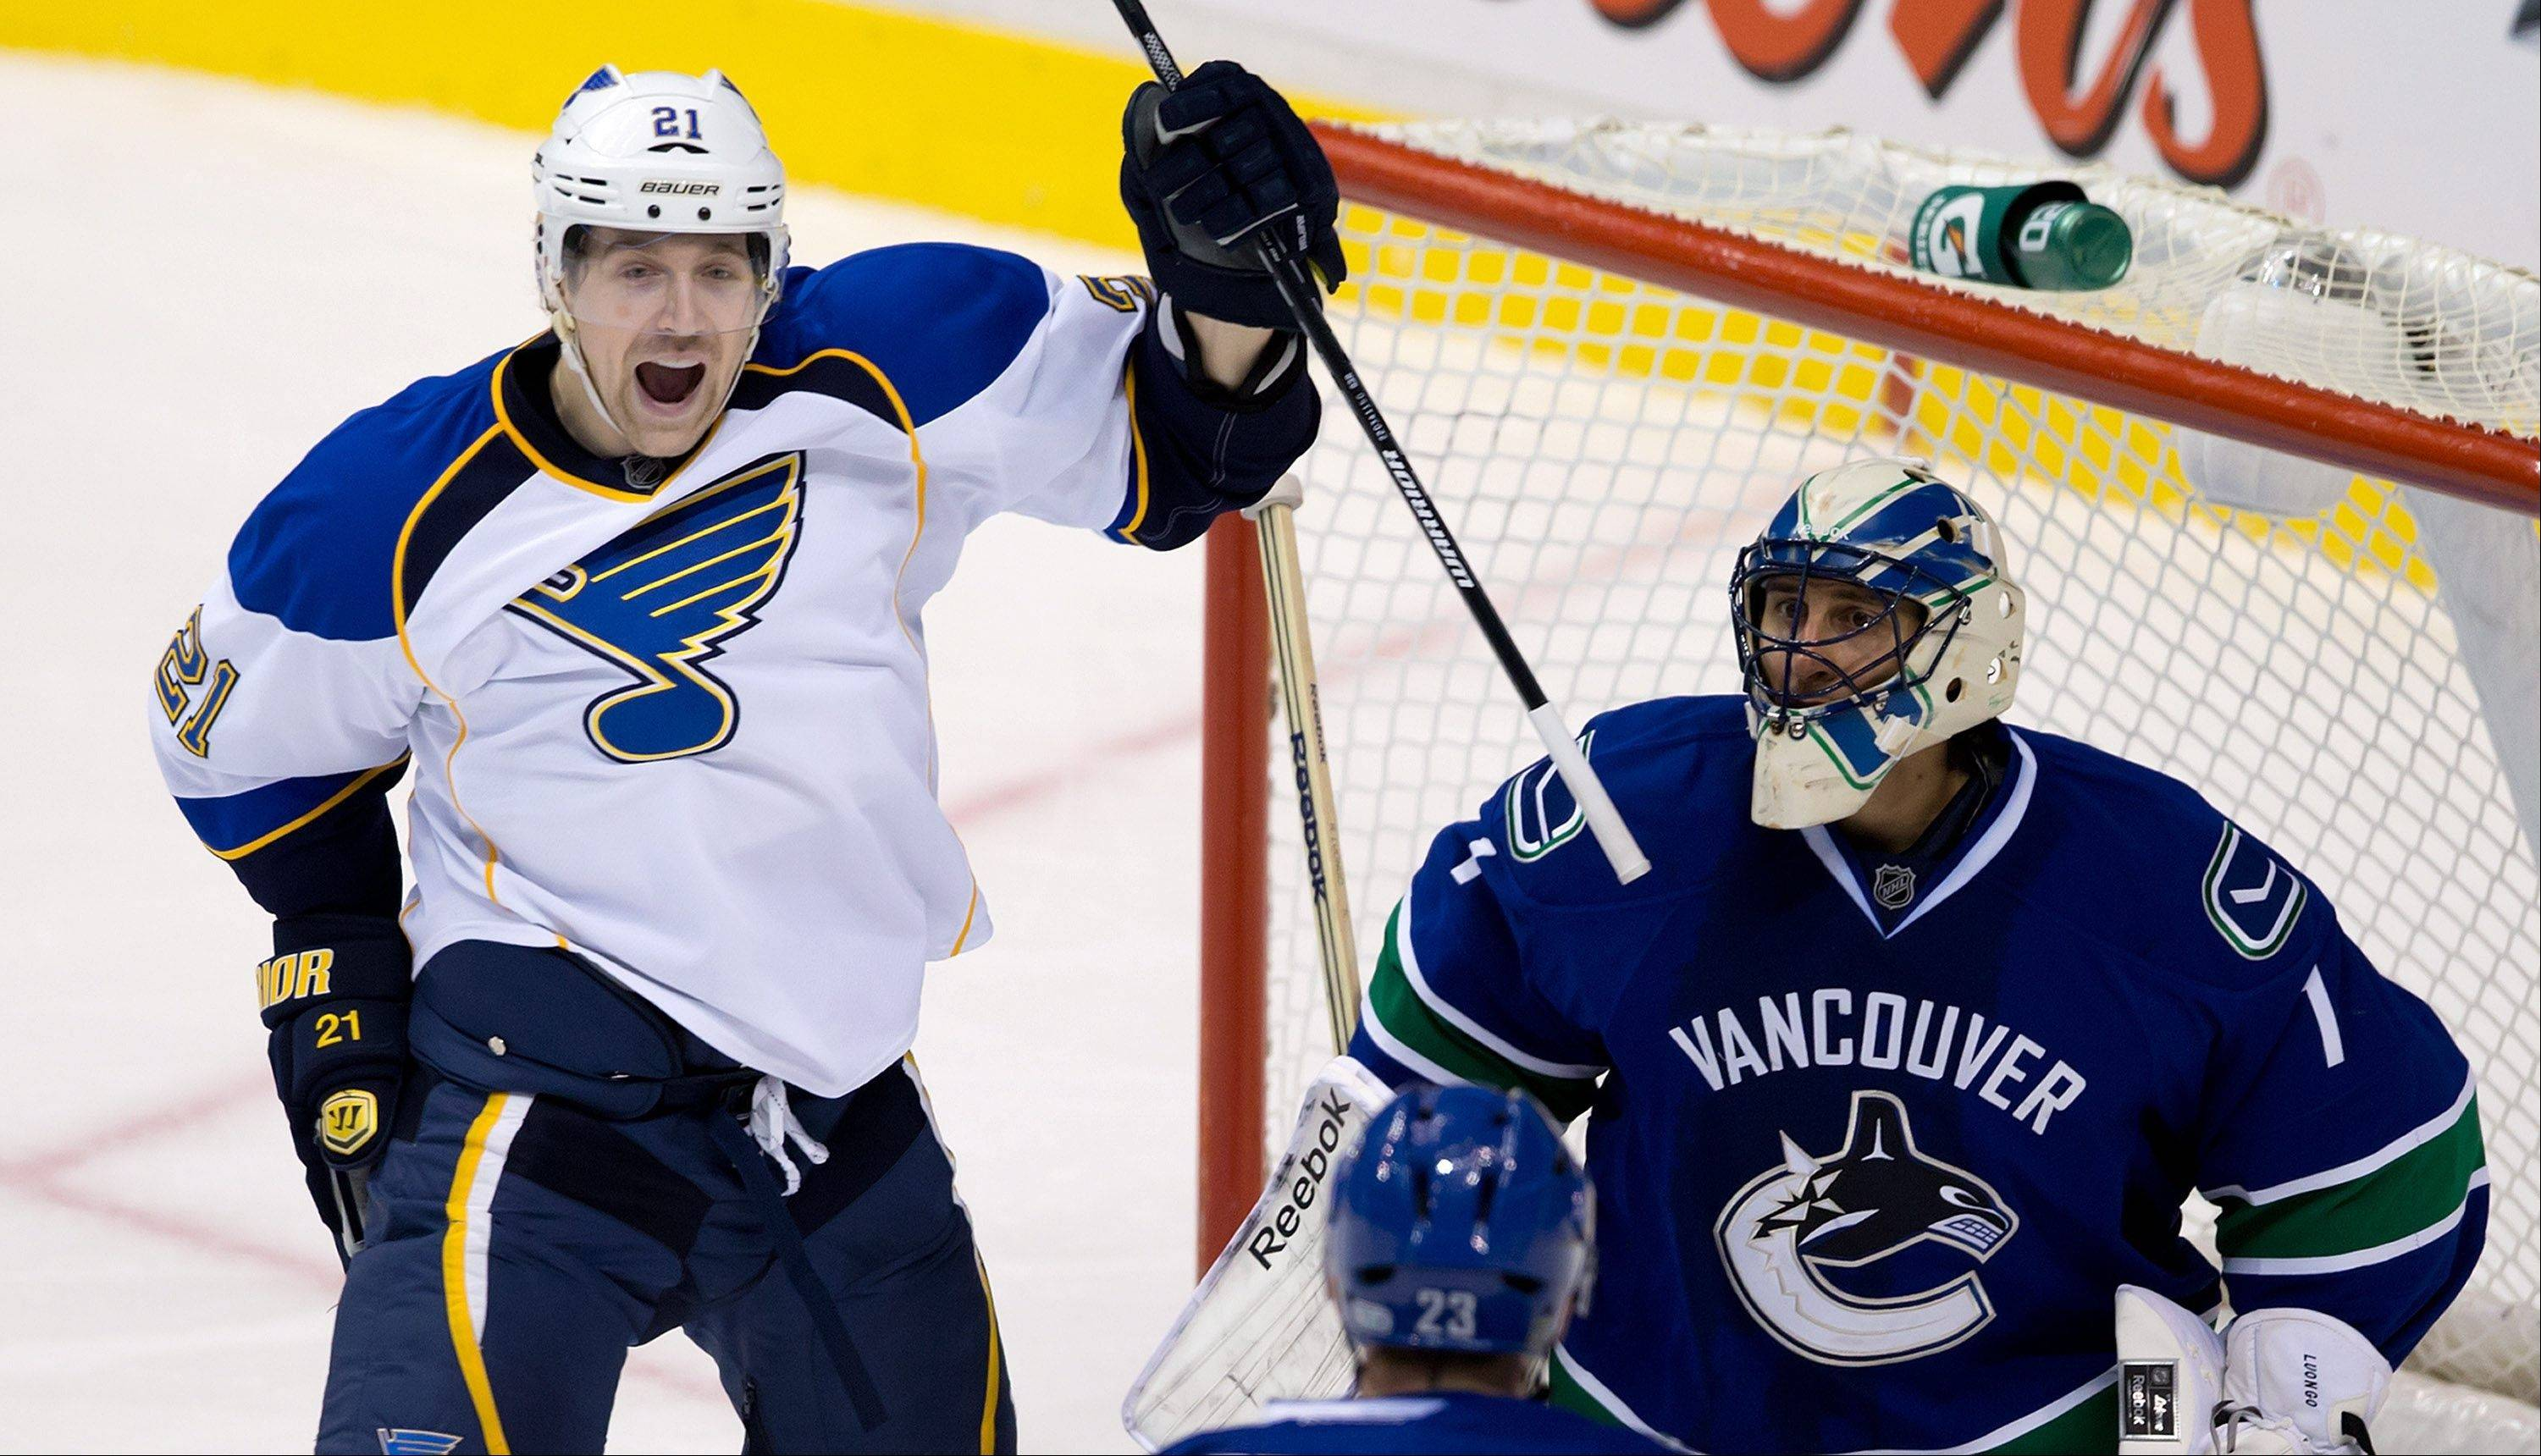 St. Louis Blues' Patrik Berglund celebrates a goal against Vancouver goalie Roberto Luongo in the third period Sunday. The Canucks lost in a shootout, 4-3, and now face the Blackhawks at the United Center.